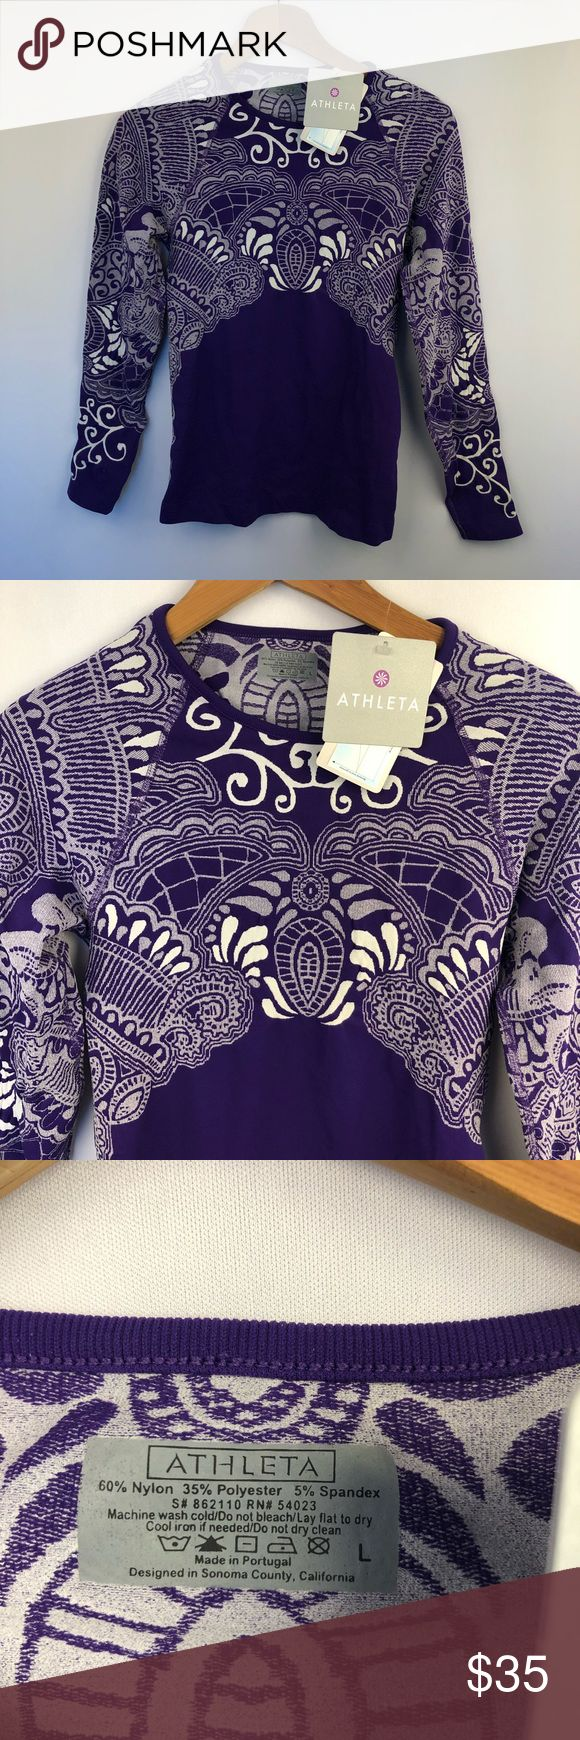 Athleta Tattoo Twist athletic Top, Size Large Athleta Tattoo Twist Top Women's size Large Features Q-skin technology  Dark purple and white Total le…